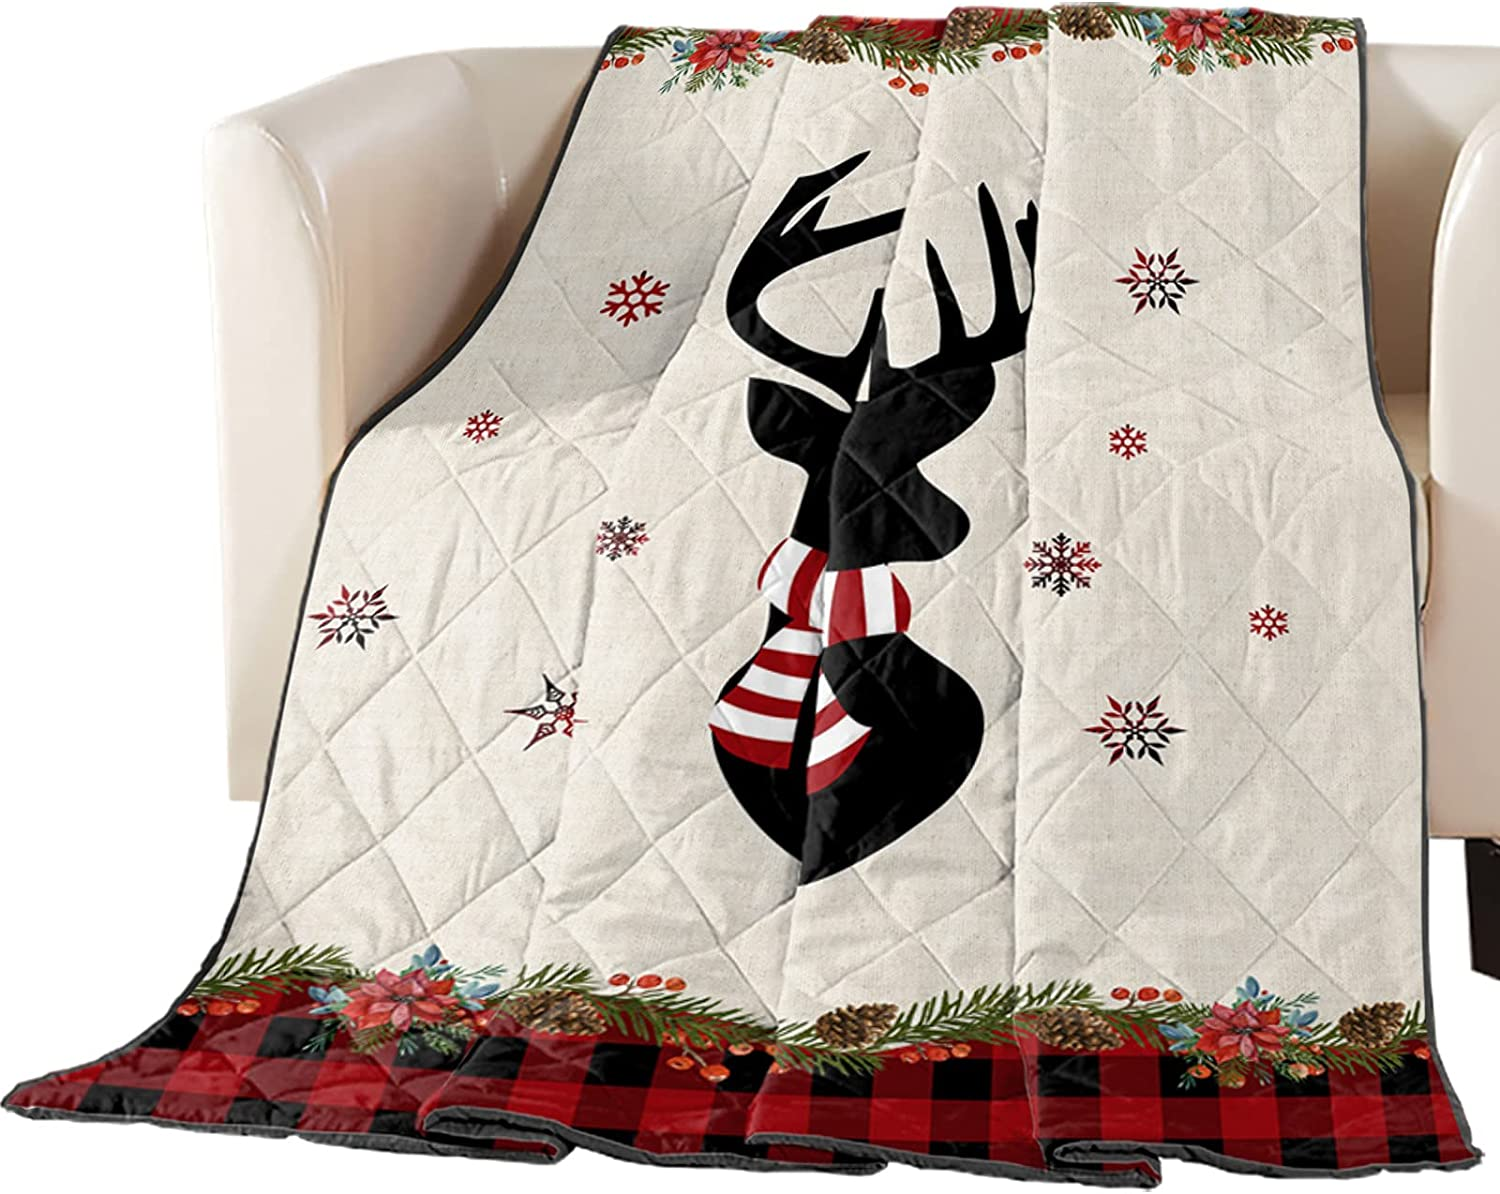 Down We OFFer at cheap prices Alternative Reversible Comforter Blanket Max 51% OFF Quilted Throw Chri